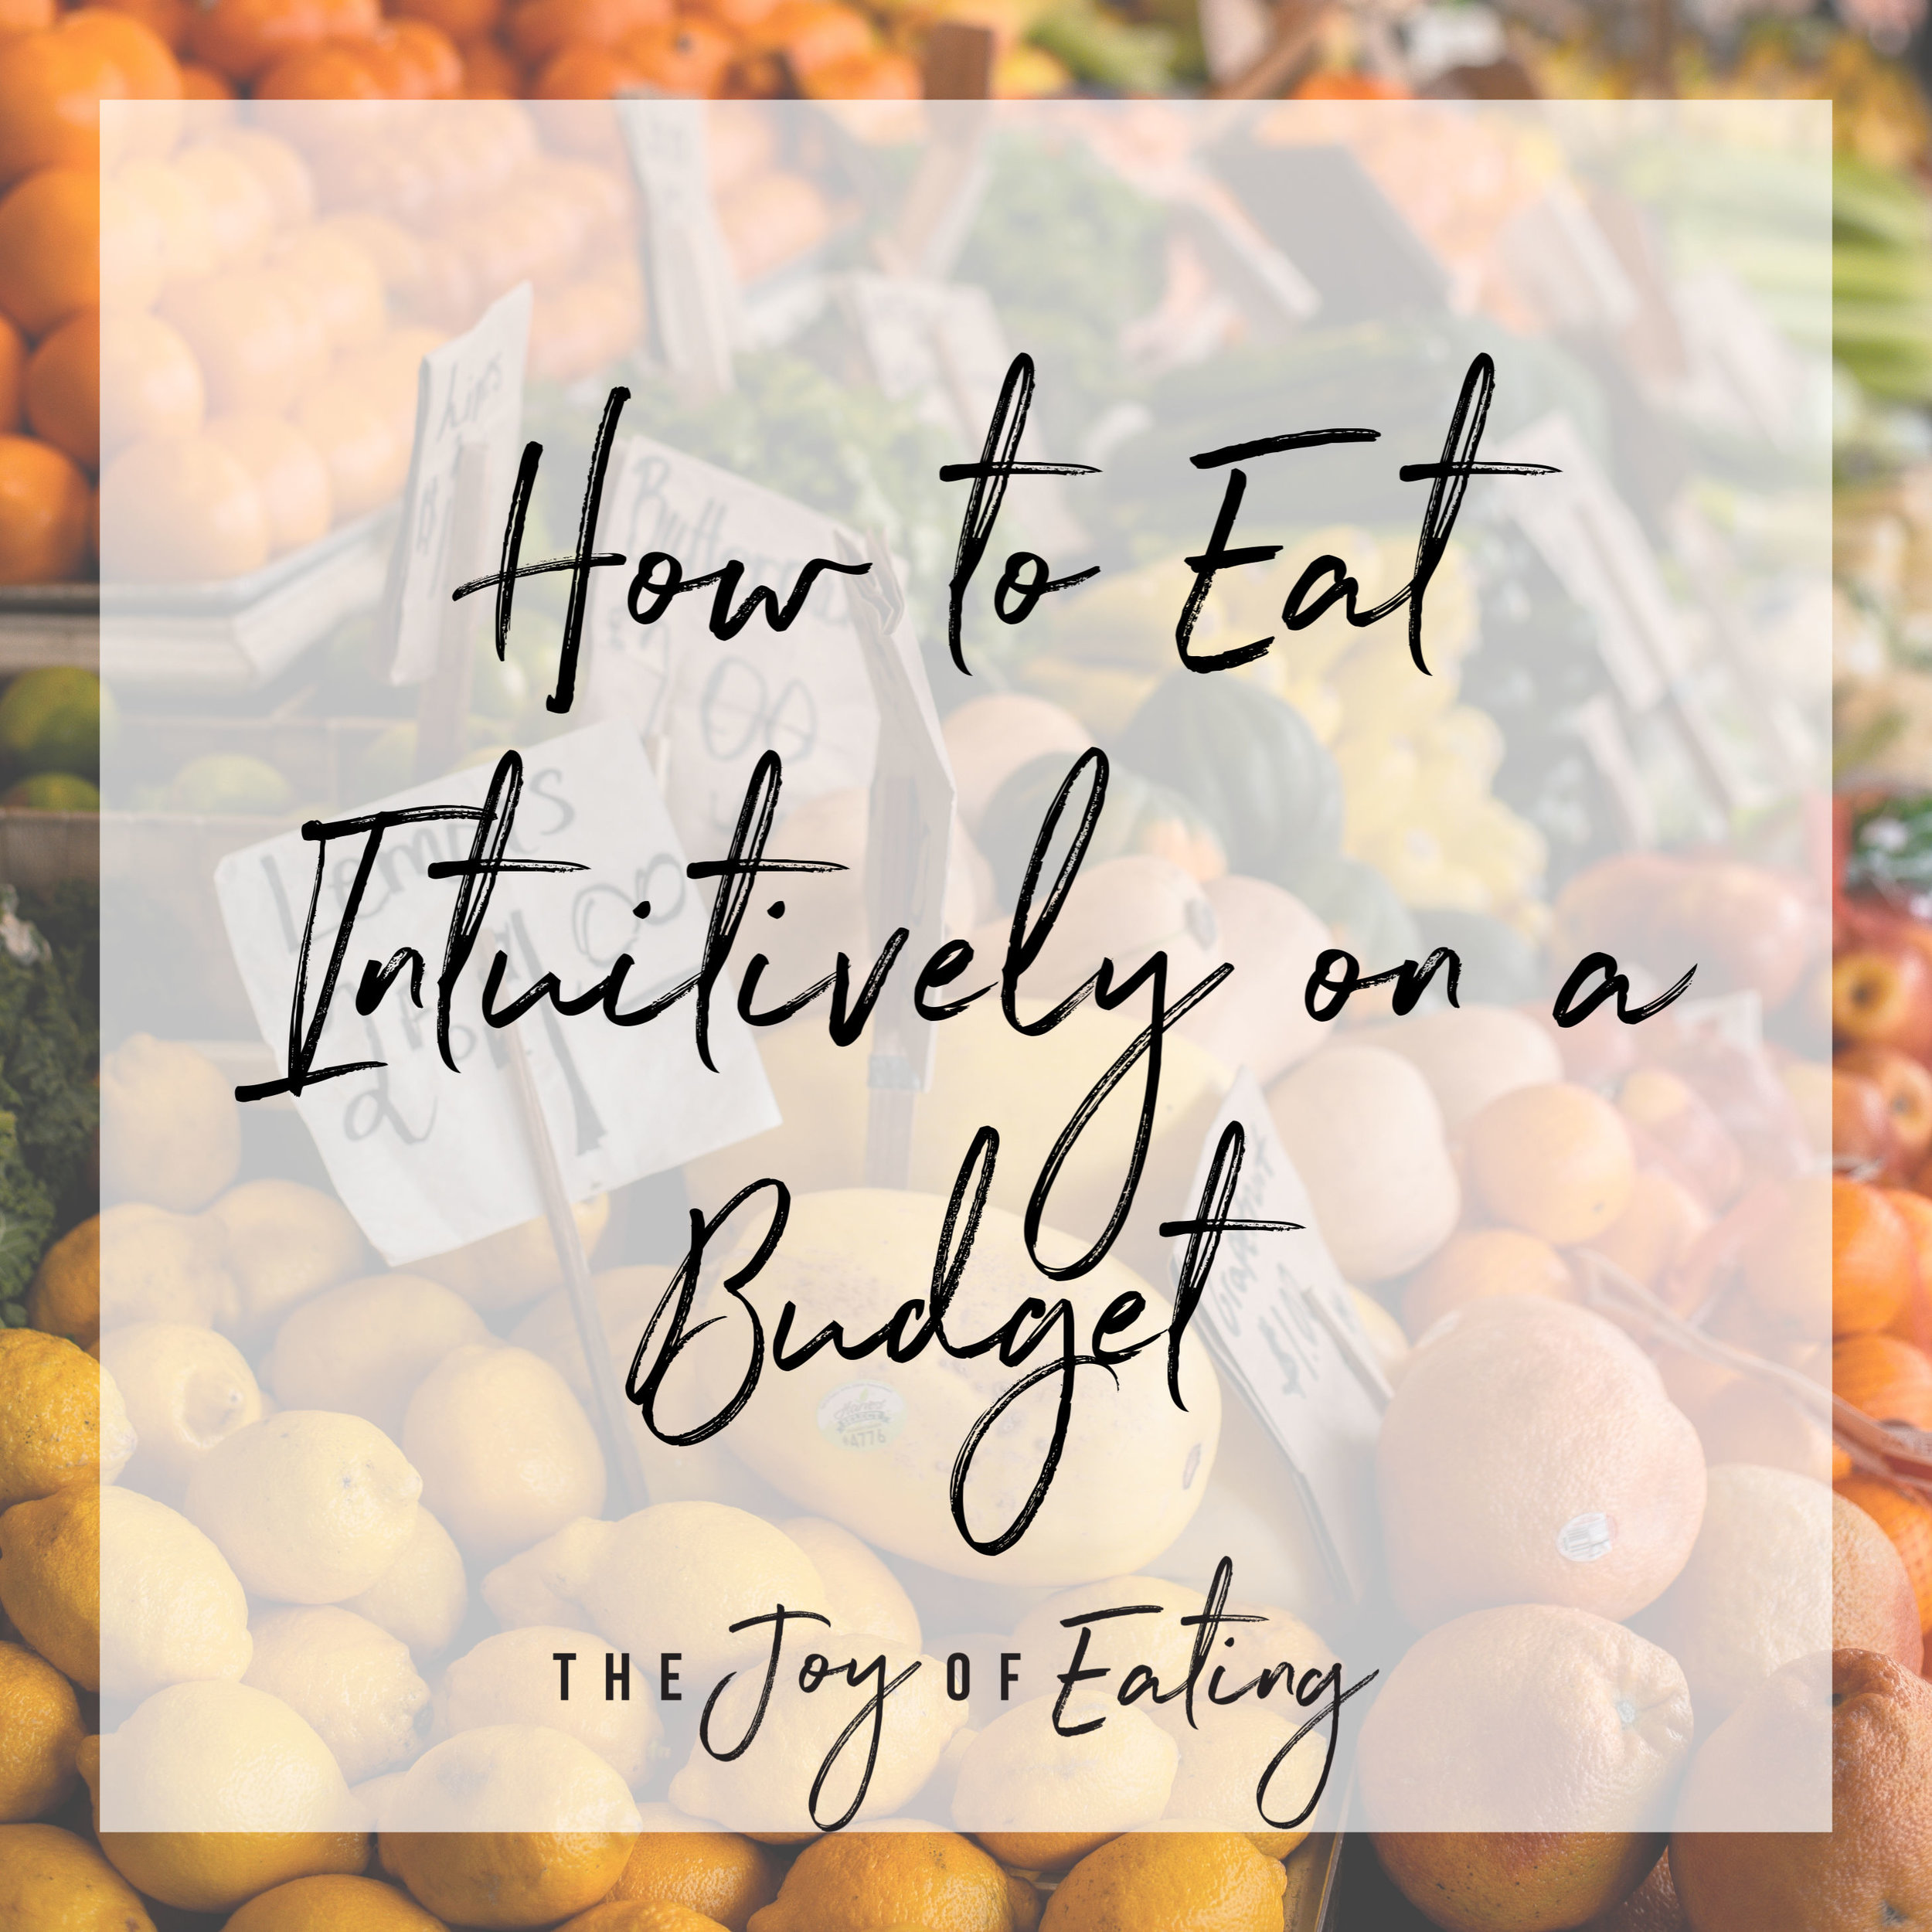 Learn how to eat intuitively on a budget. #intuitiveeating #budgetfriendly #healthy